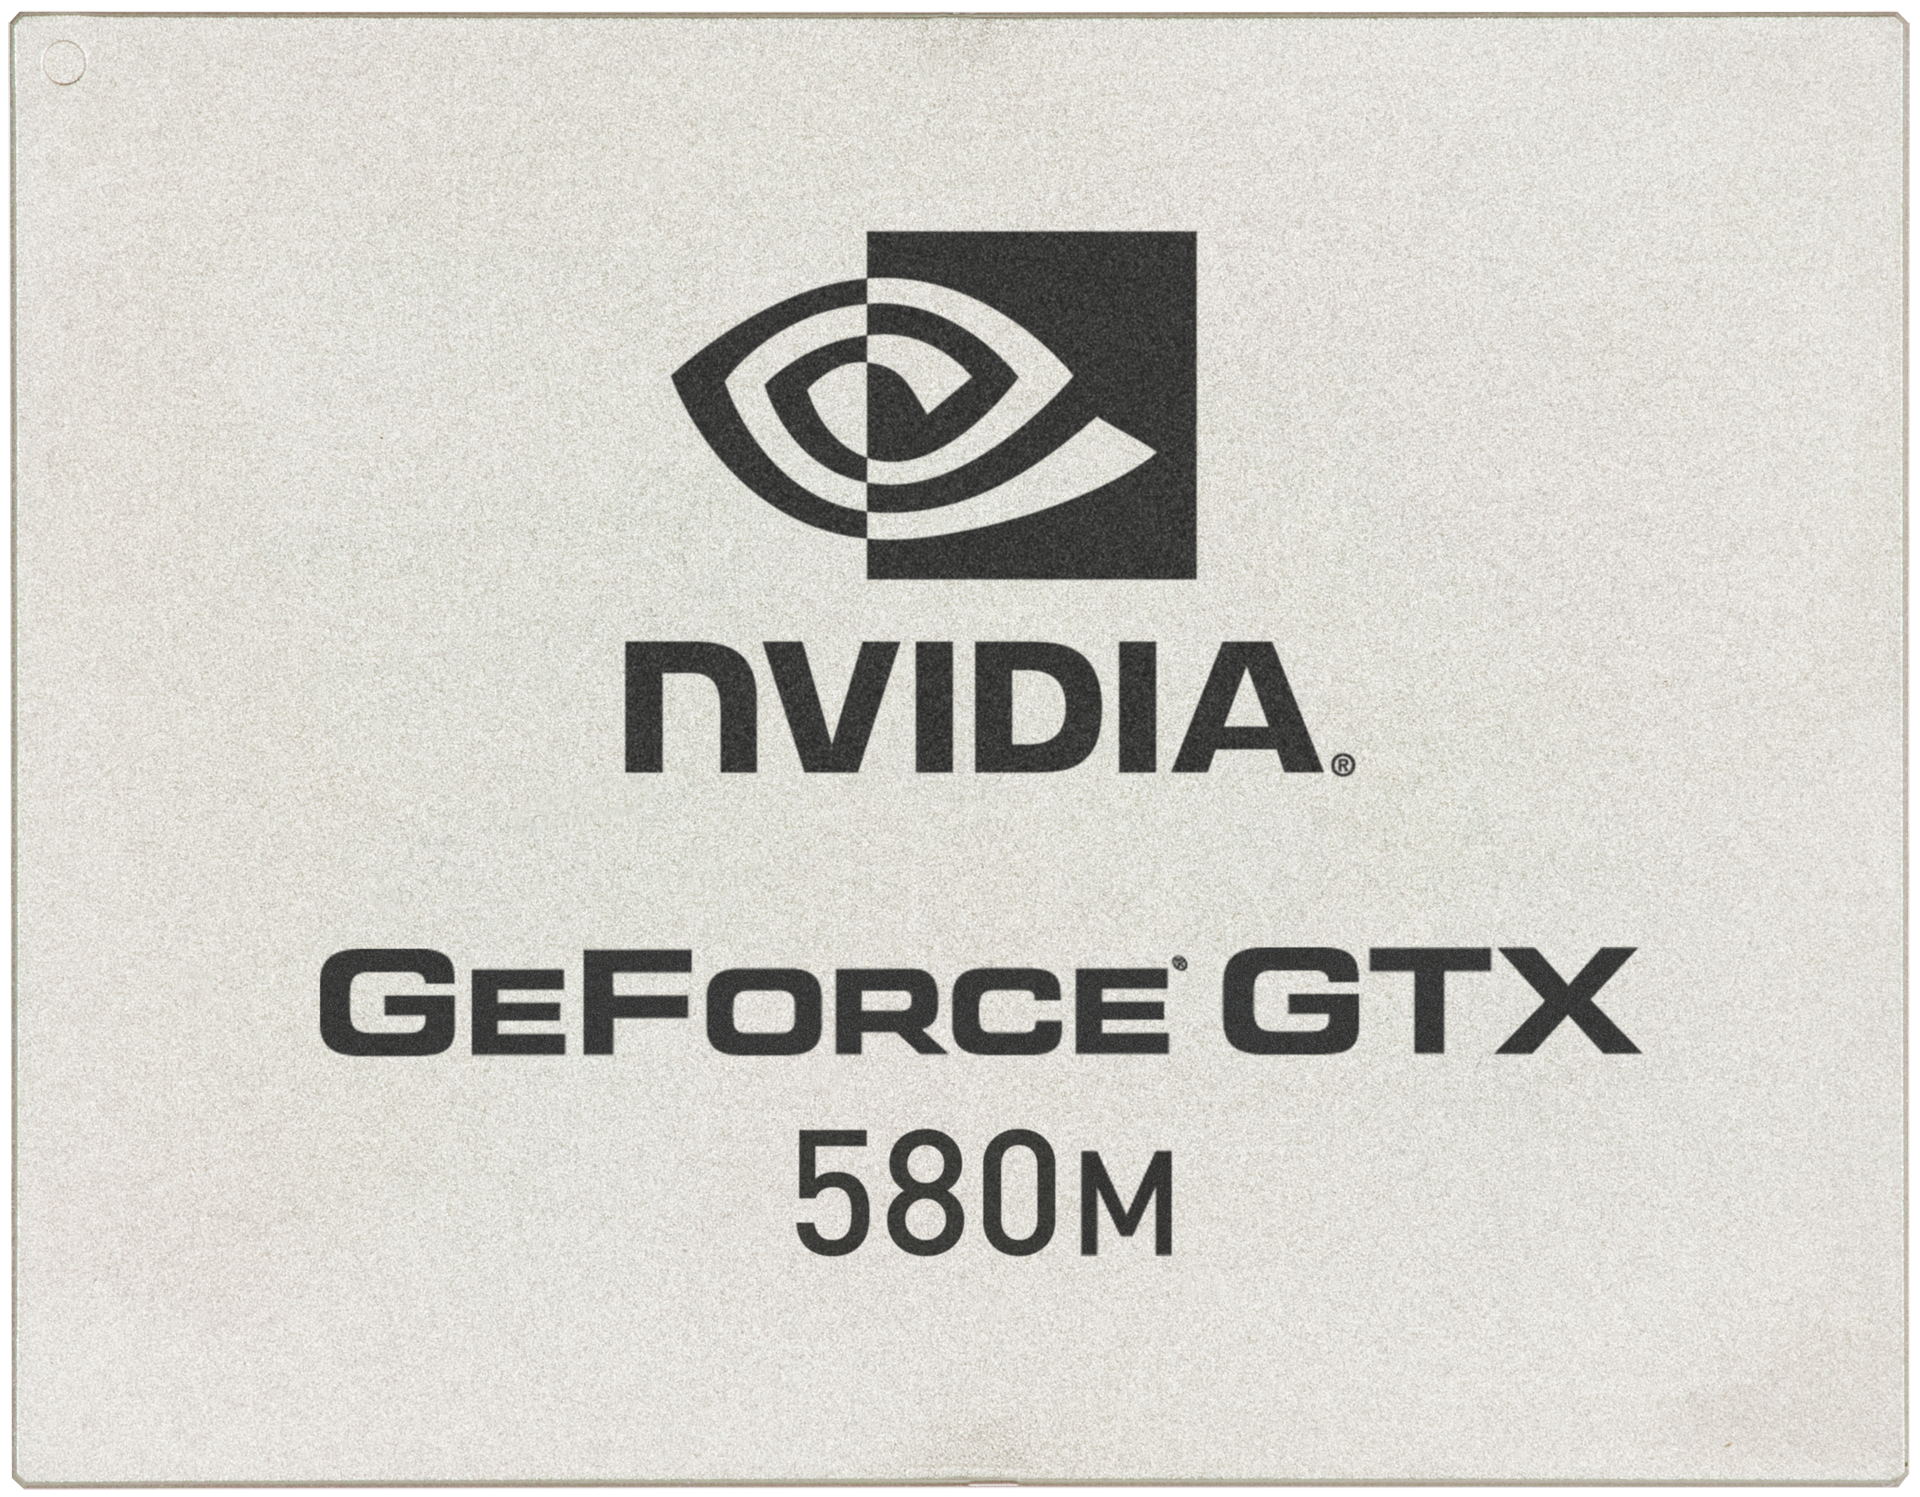 Nvidia GeForce GTX 570M e 580M, nuove GPU per il mobile gaming